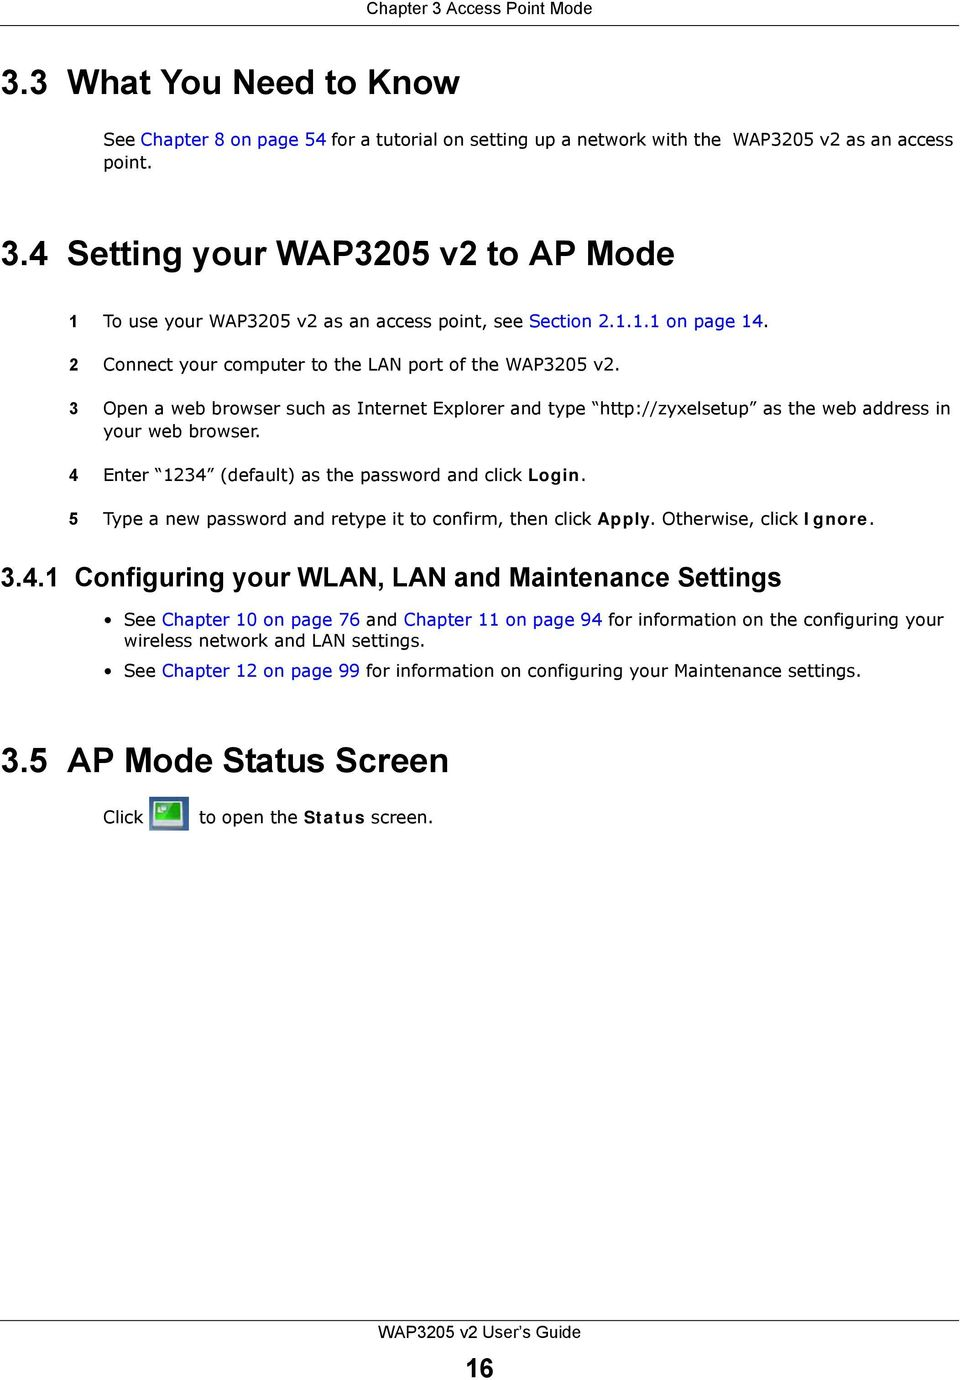 4 Enter 1234 (default) as the password and click Login. 5 Type a new password and retype it to confirm, then click Apply. Otherwise, click Ignore. 3.4.1 Configuring your WLAN, LAN and Maintenance Settings See Chapter 10 on page 76 and Chapter 11 on page 94 for information on the configuring your wireless network and LAN settings.